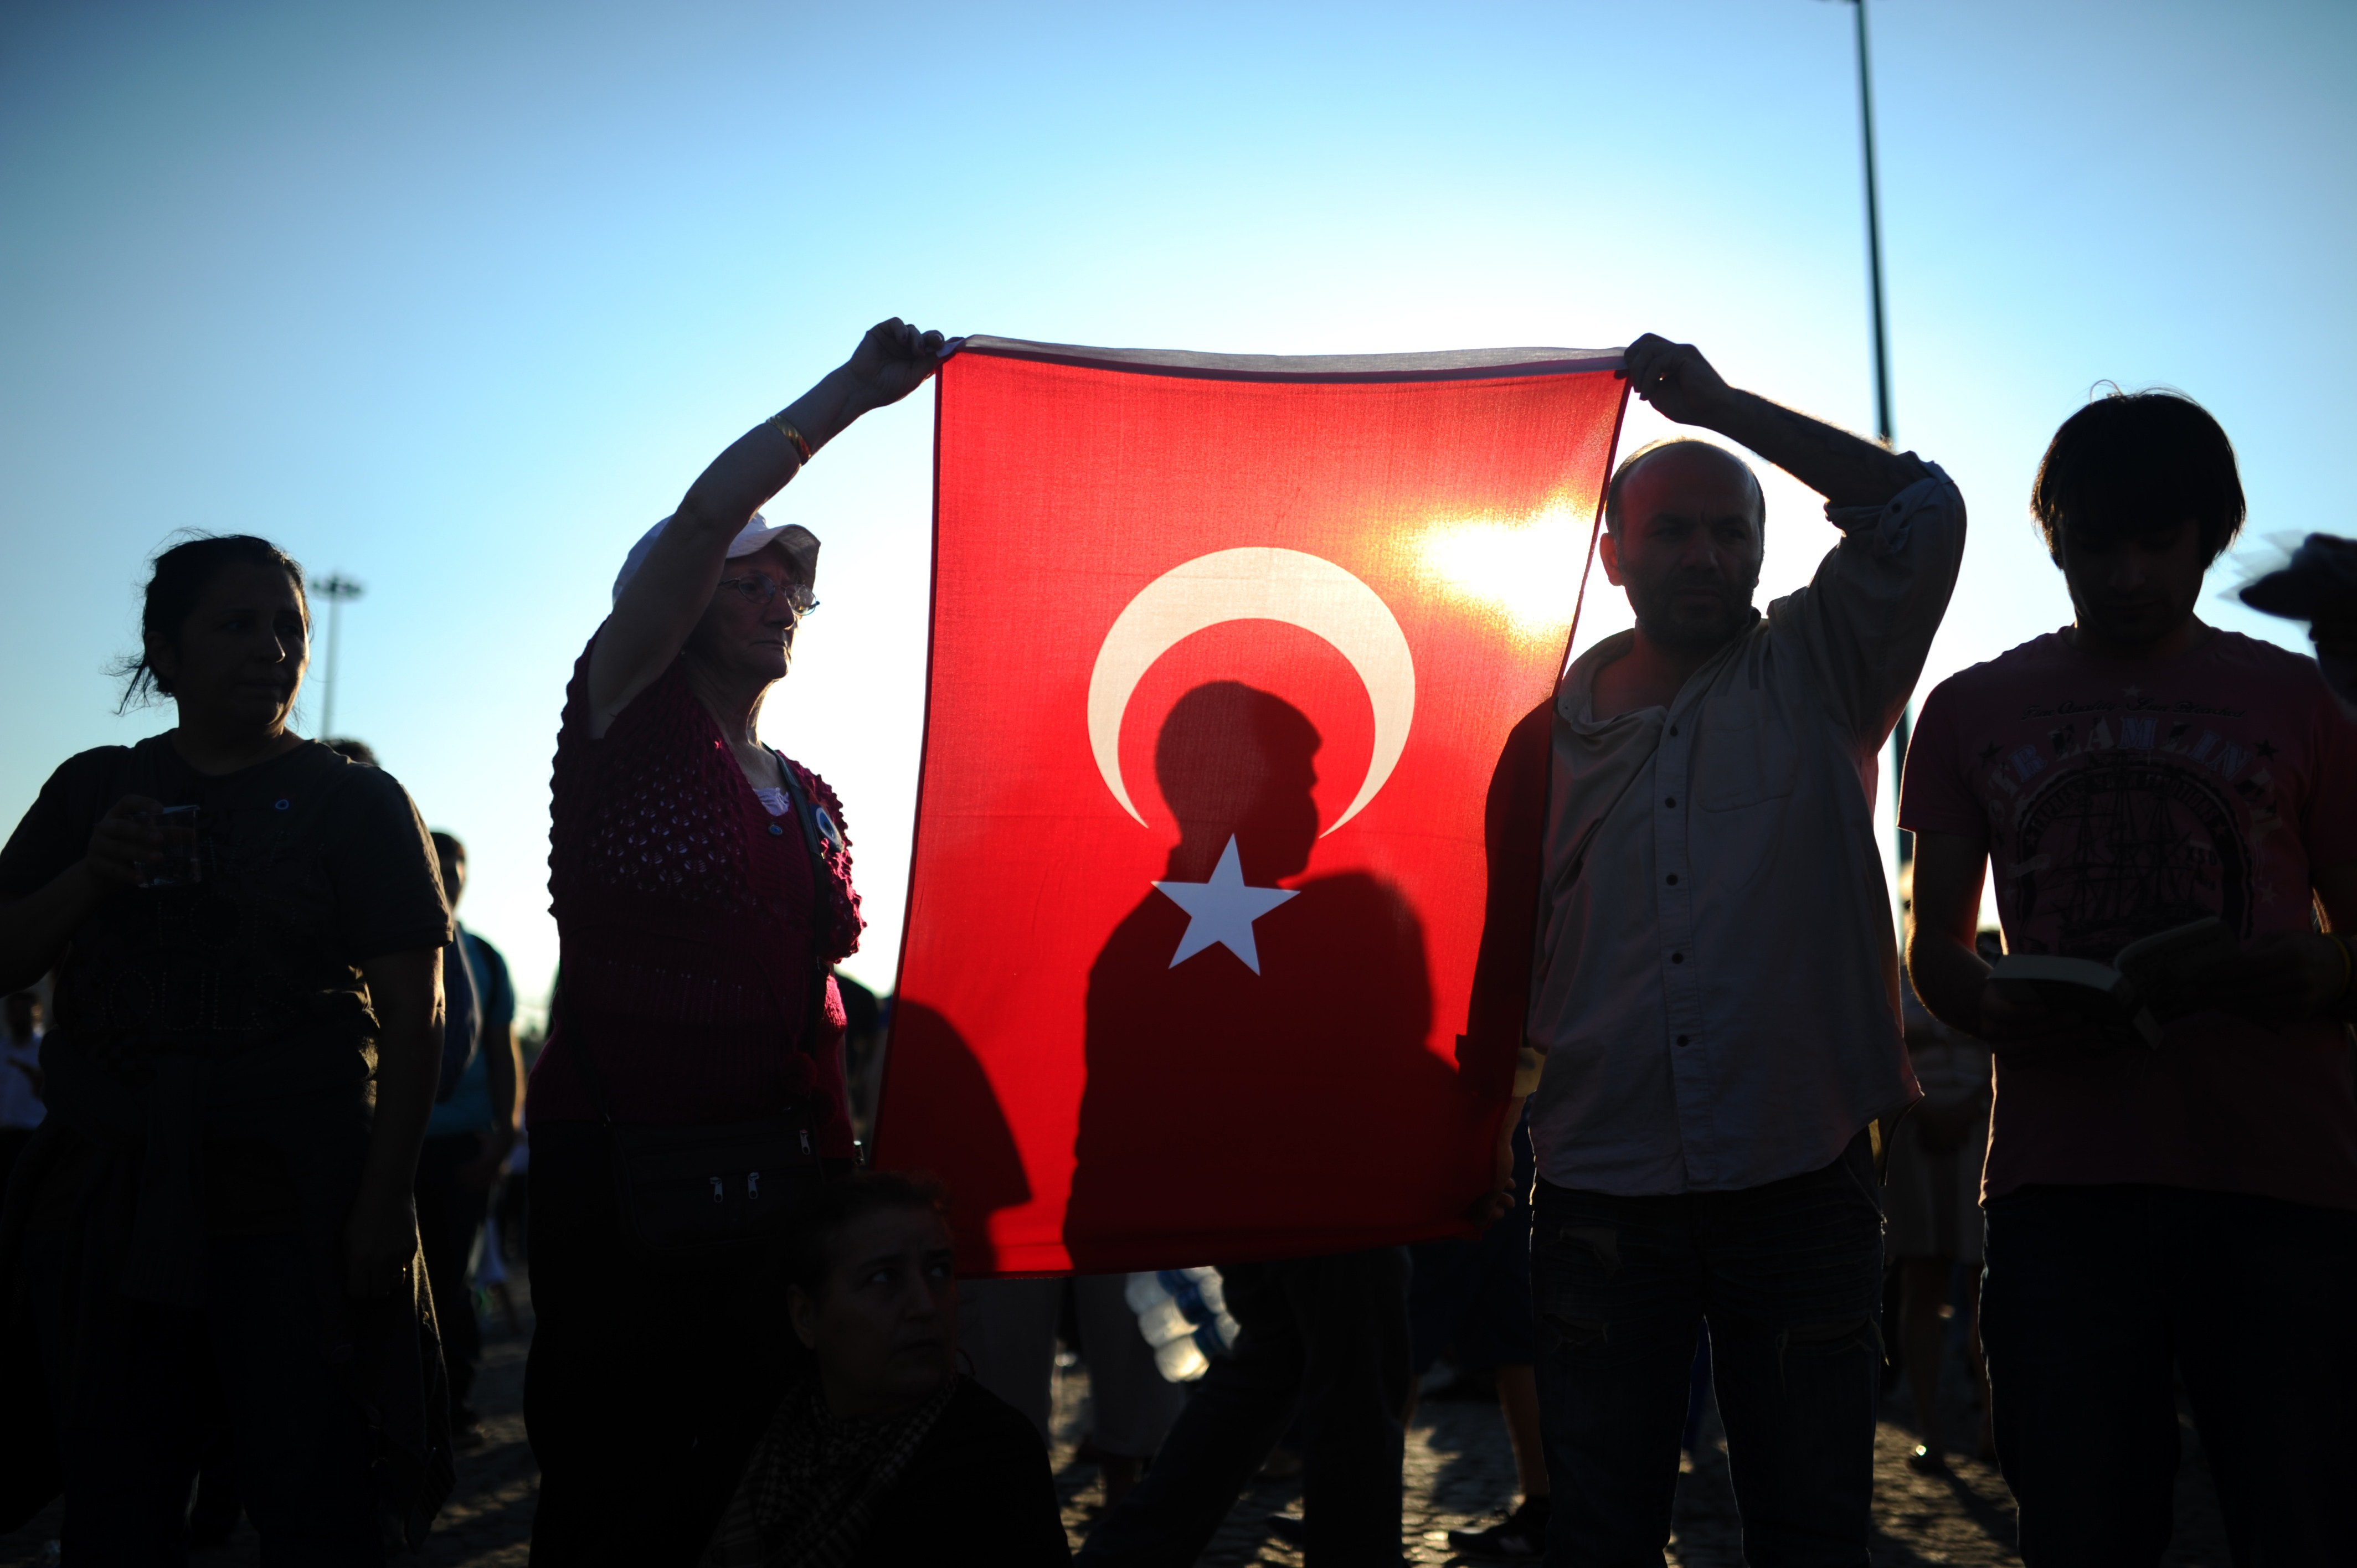 People hold a Turkish national flag as they stand on the flashpoint Taksim square in Istanbul on June 18, 2013 during a wave of new alternative protests. (AFP Photo)